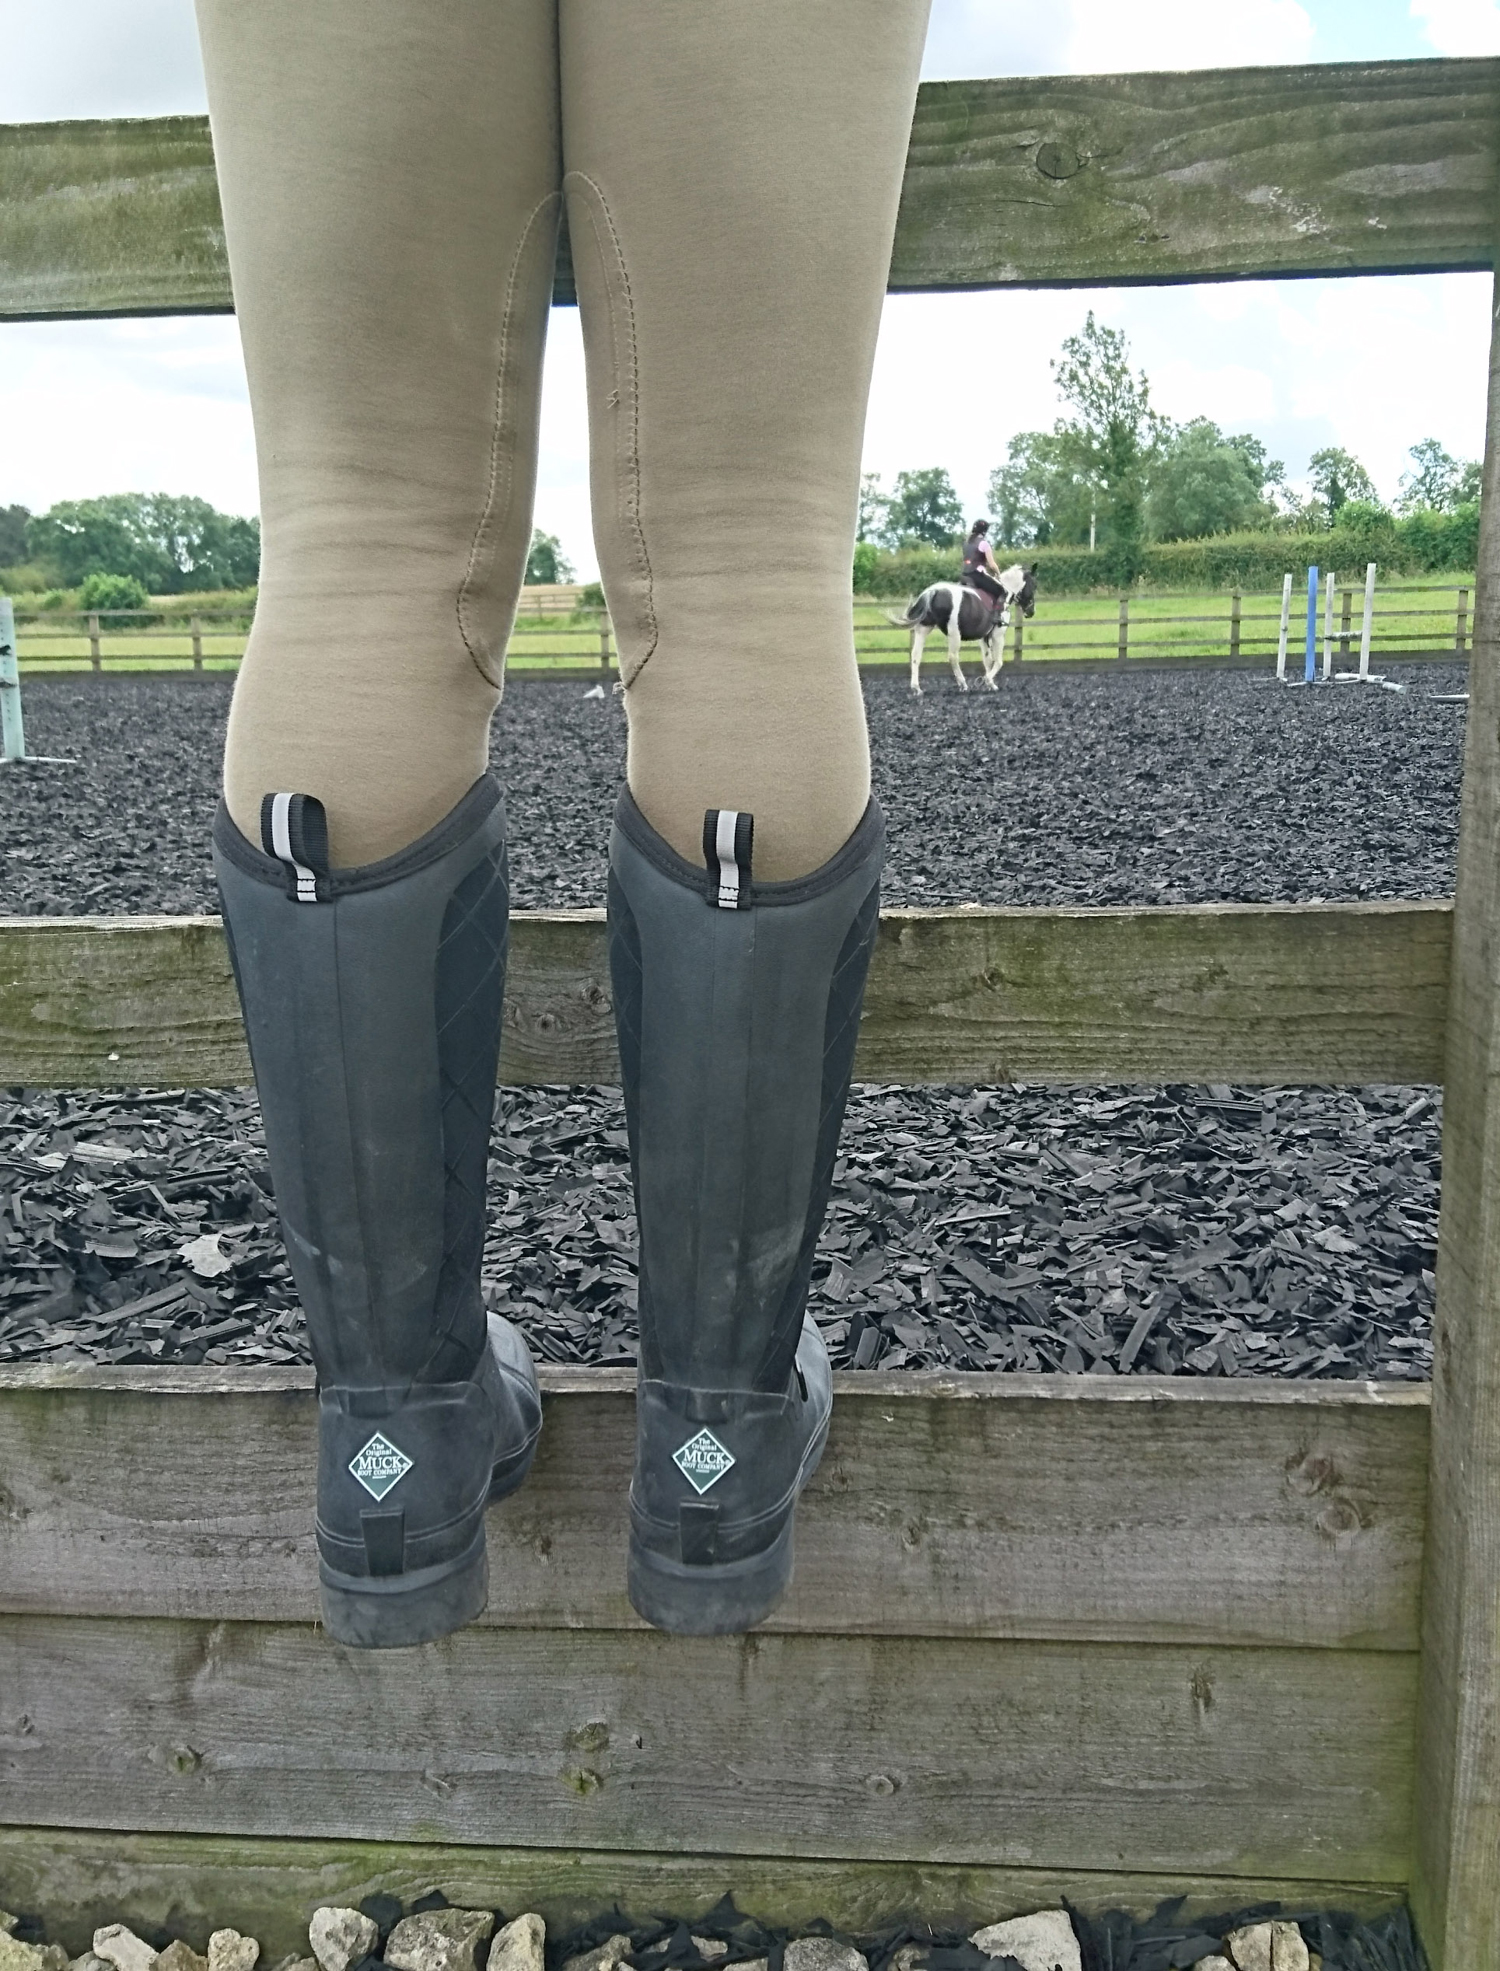 Pacy II Riding Boots from The Original Muck Boot Company - Review